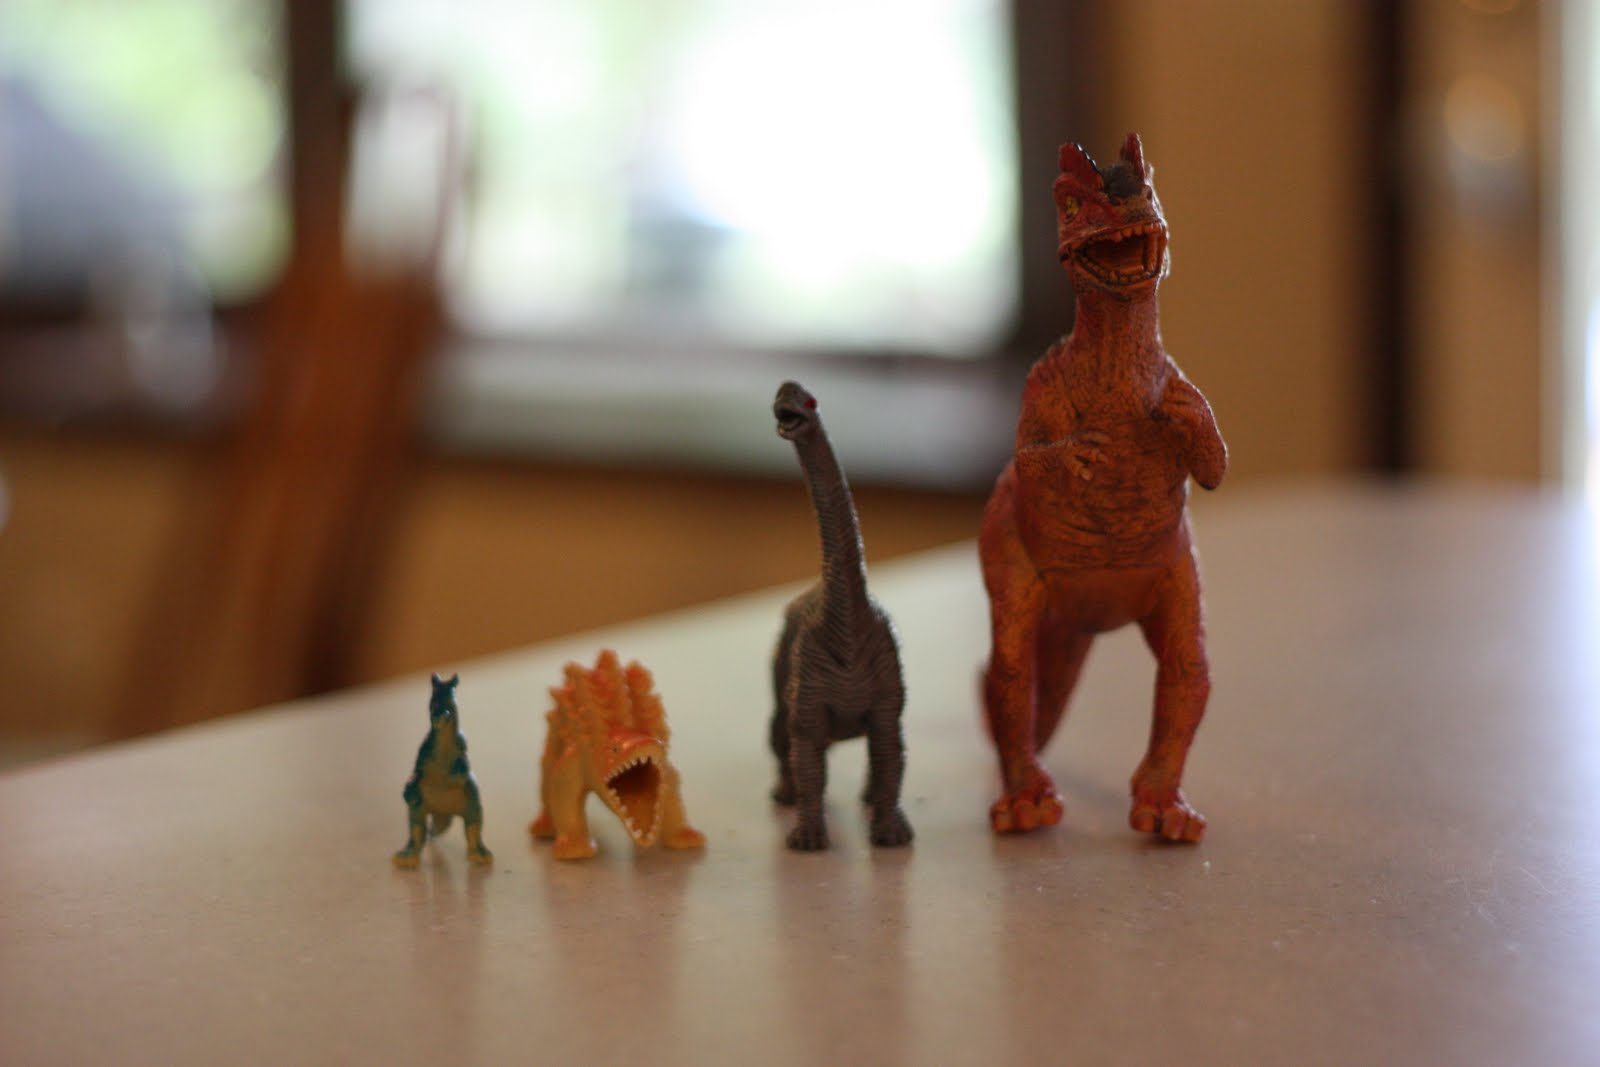 Biggest To Smallest With Dinosaurs And Footprints Too